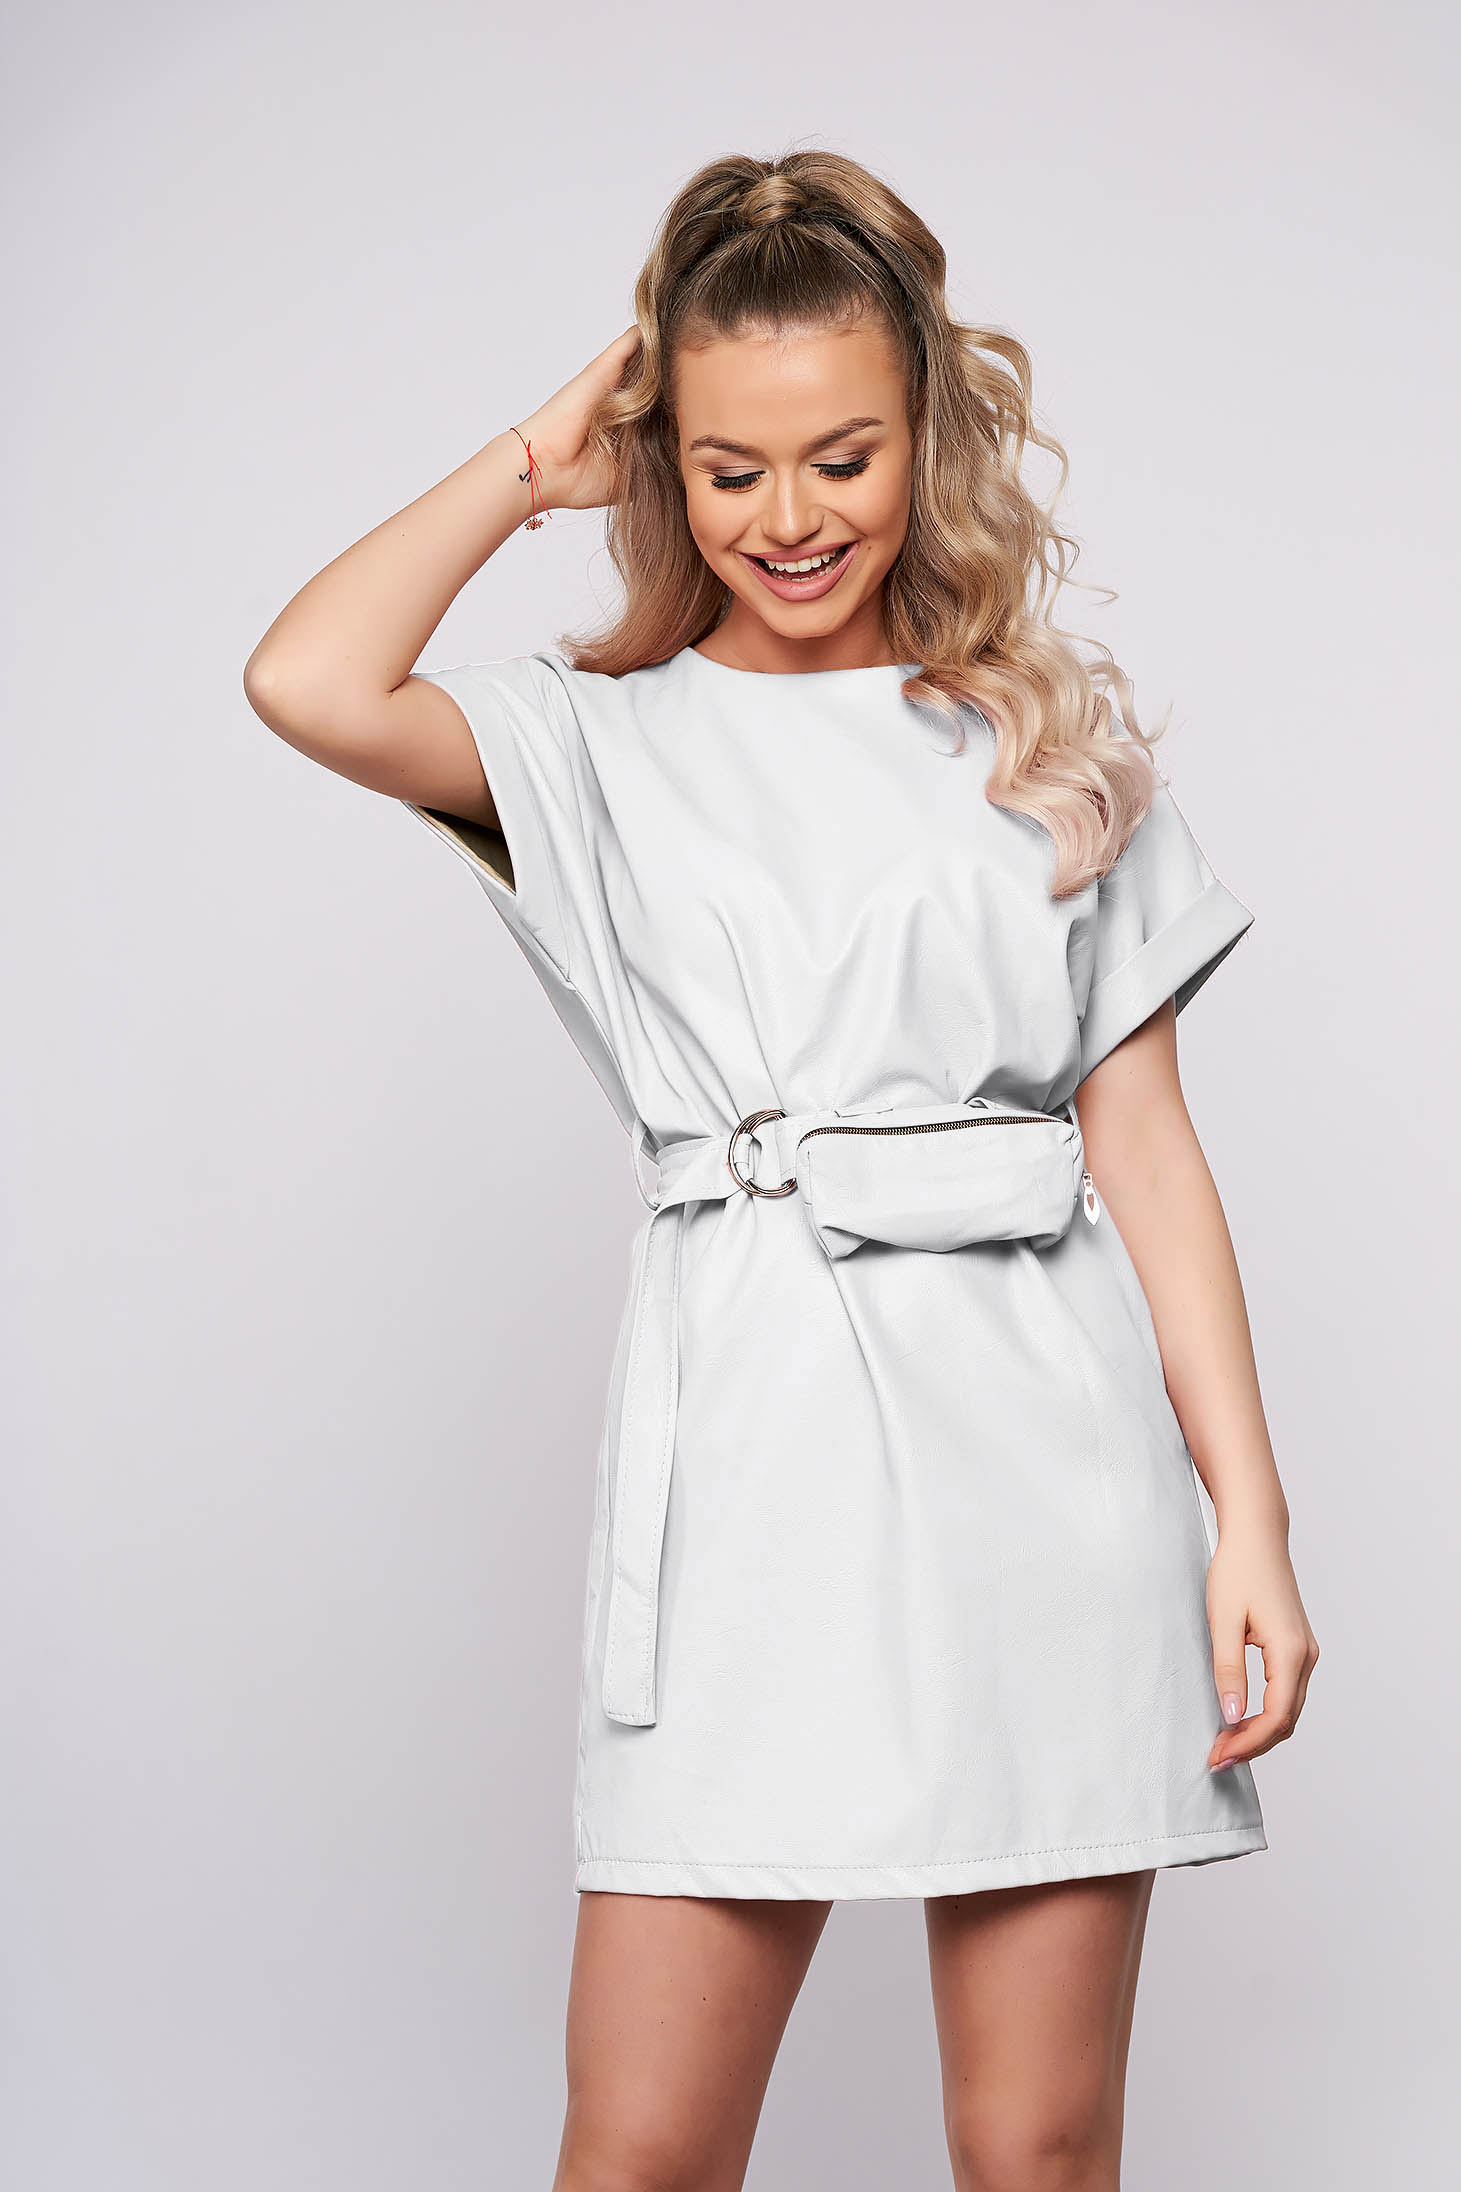 White casual straight short cut dress from ecological leather accessorized with belt